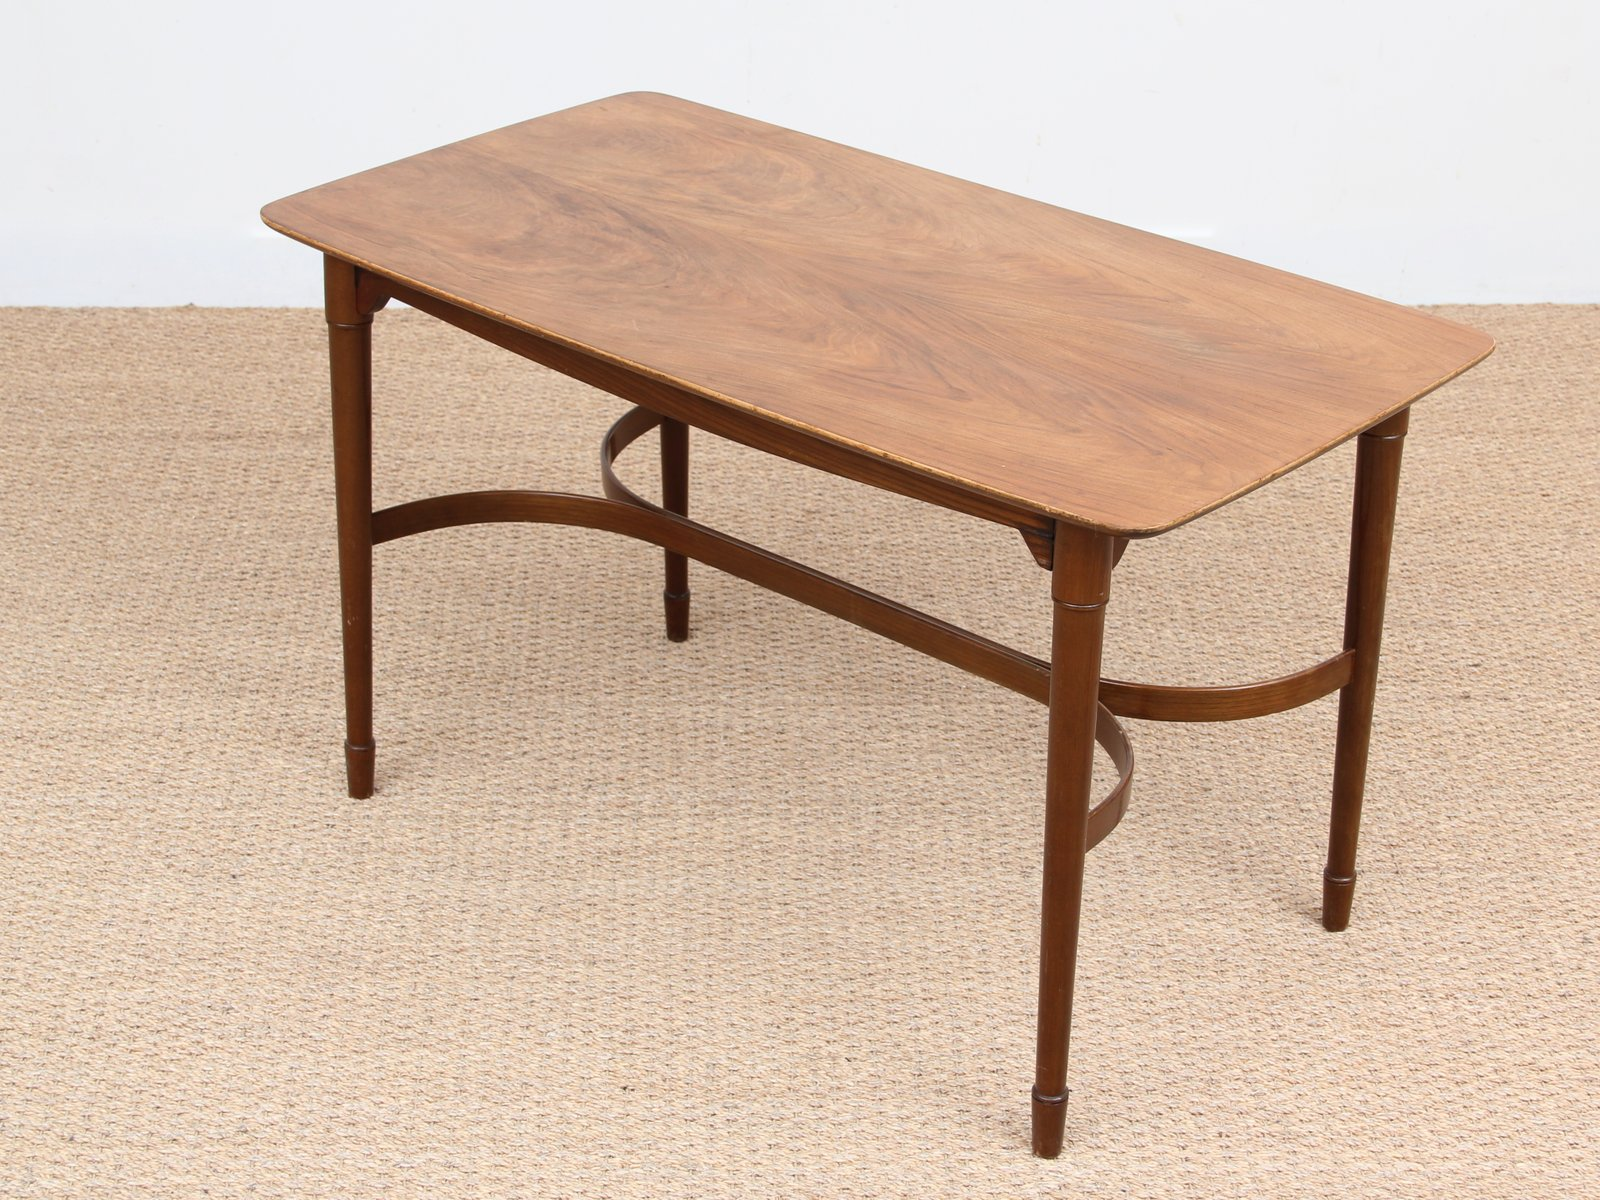 Walnut mahogany coffee table 1950s for sale at pamono for Walnut coffee table